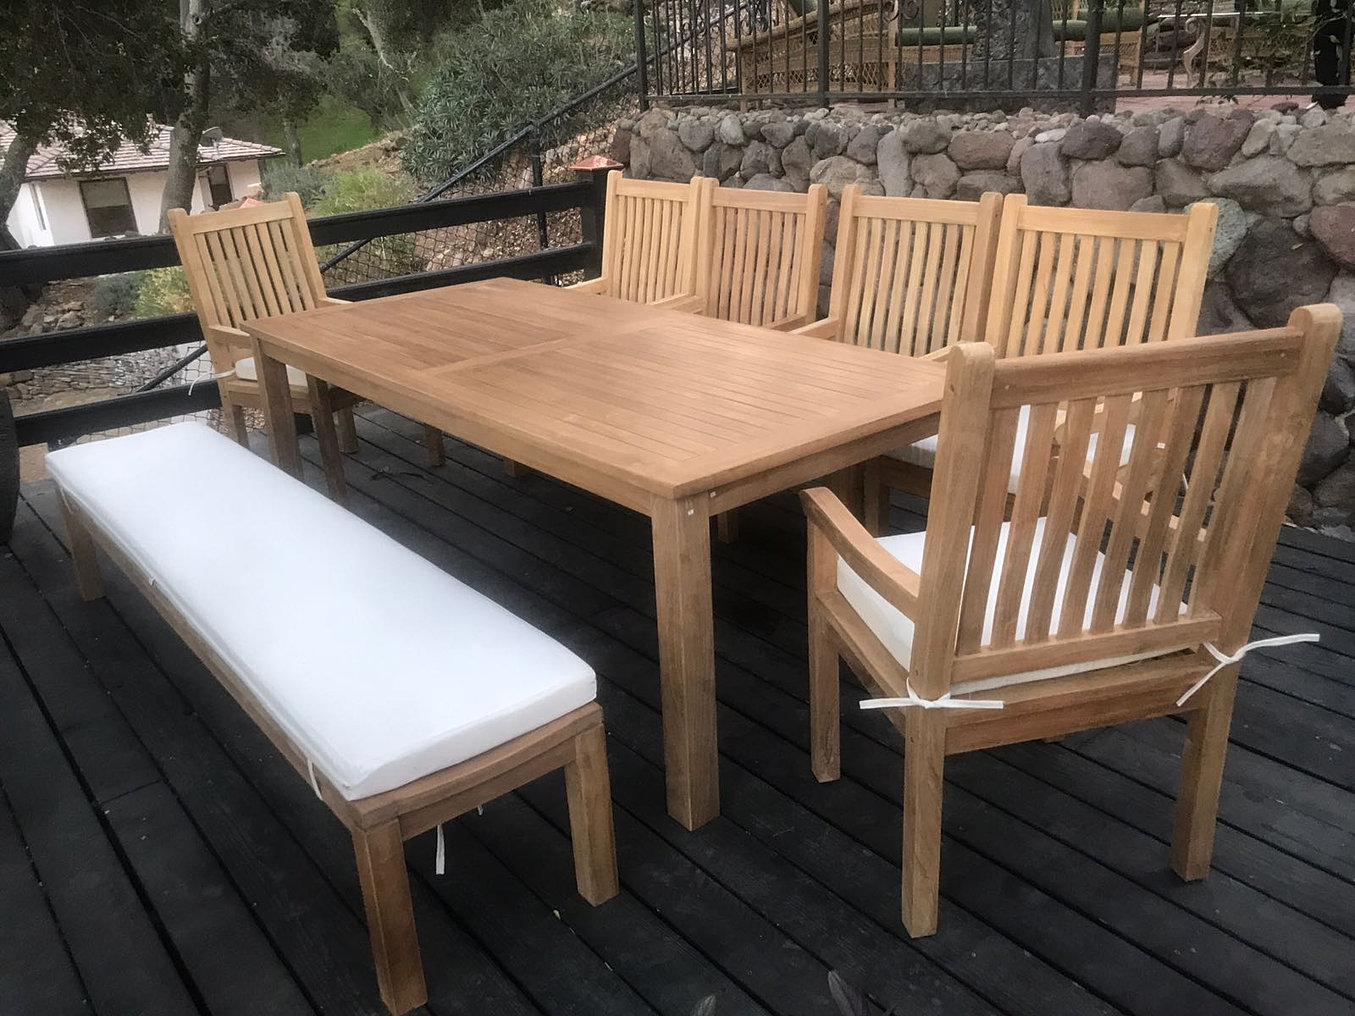 Lounge sofa outdoor teak  Teak Patio Furniture | Woodland Hills | IKsun Teak Patio Furniture